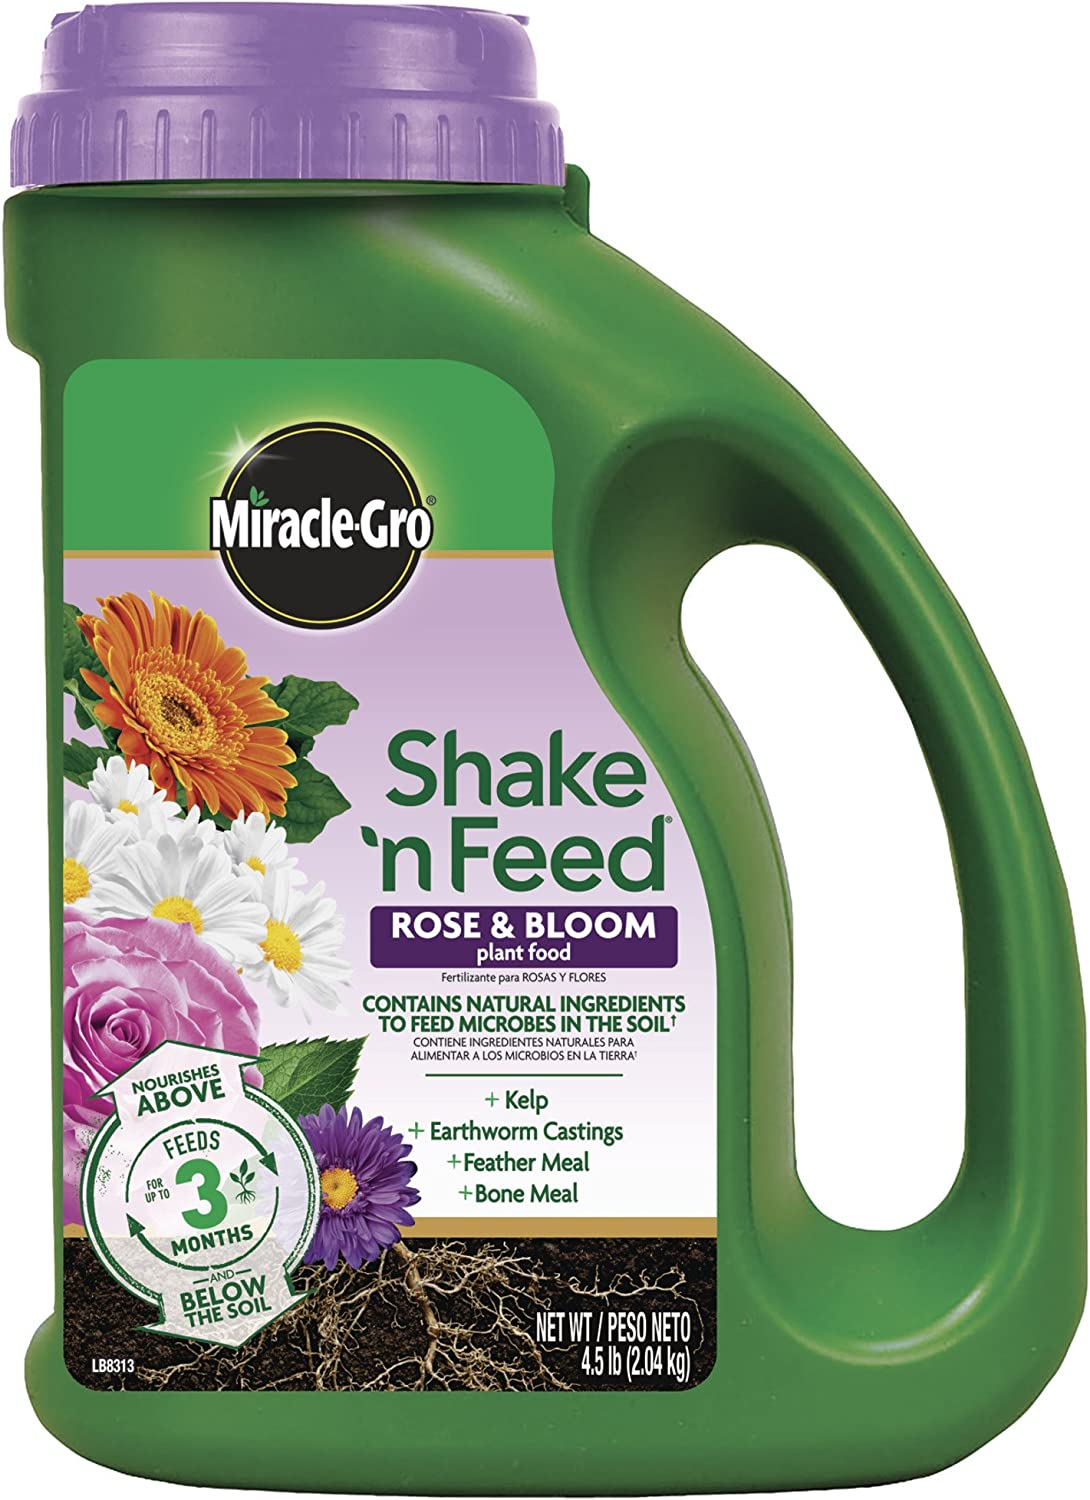 Miracle-Gro 3002210 Shake 'N Feed Rose & Bloom Continuous Release Plant Food